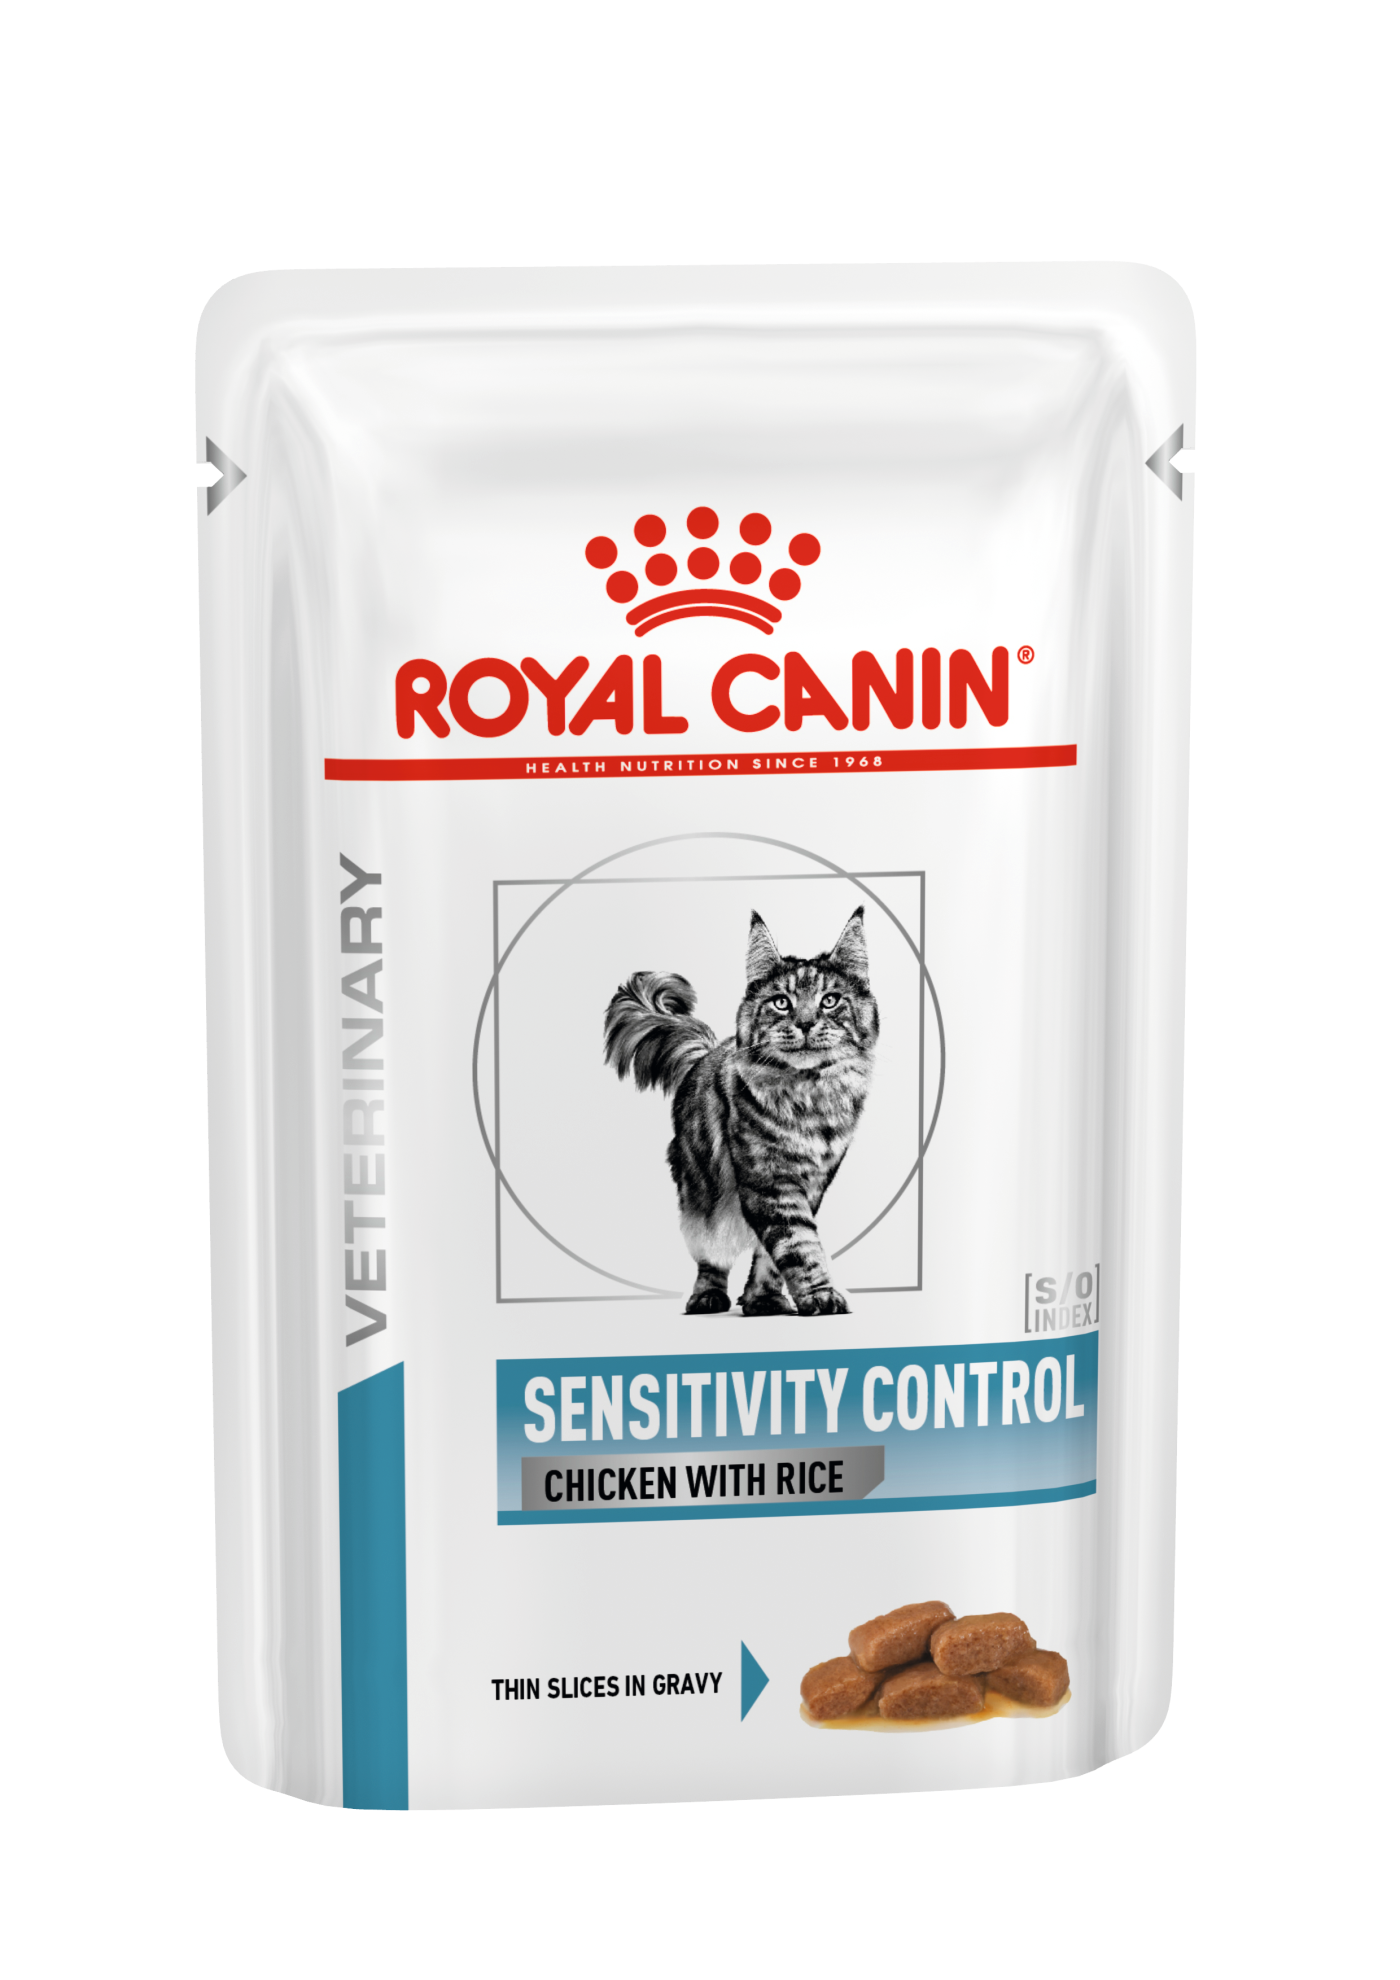 Sensitivity Control Chicken with Rice, 85g